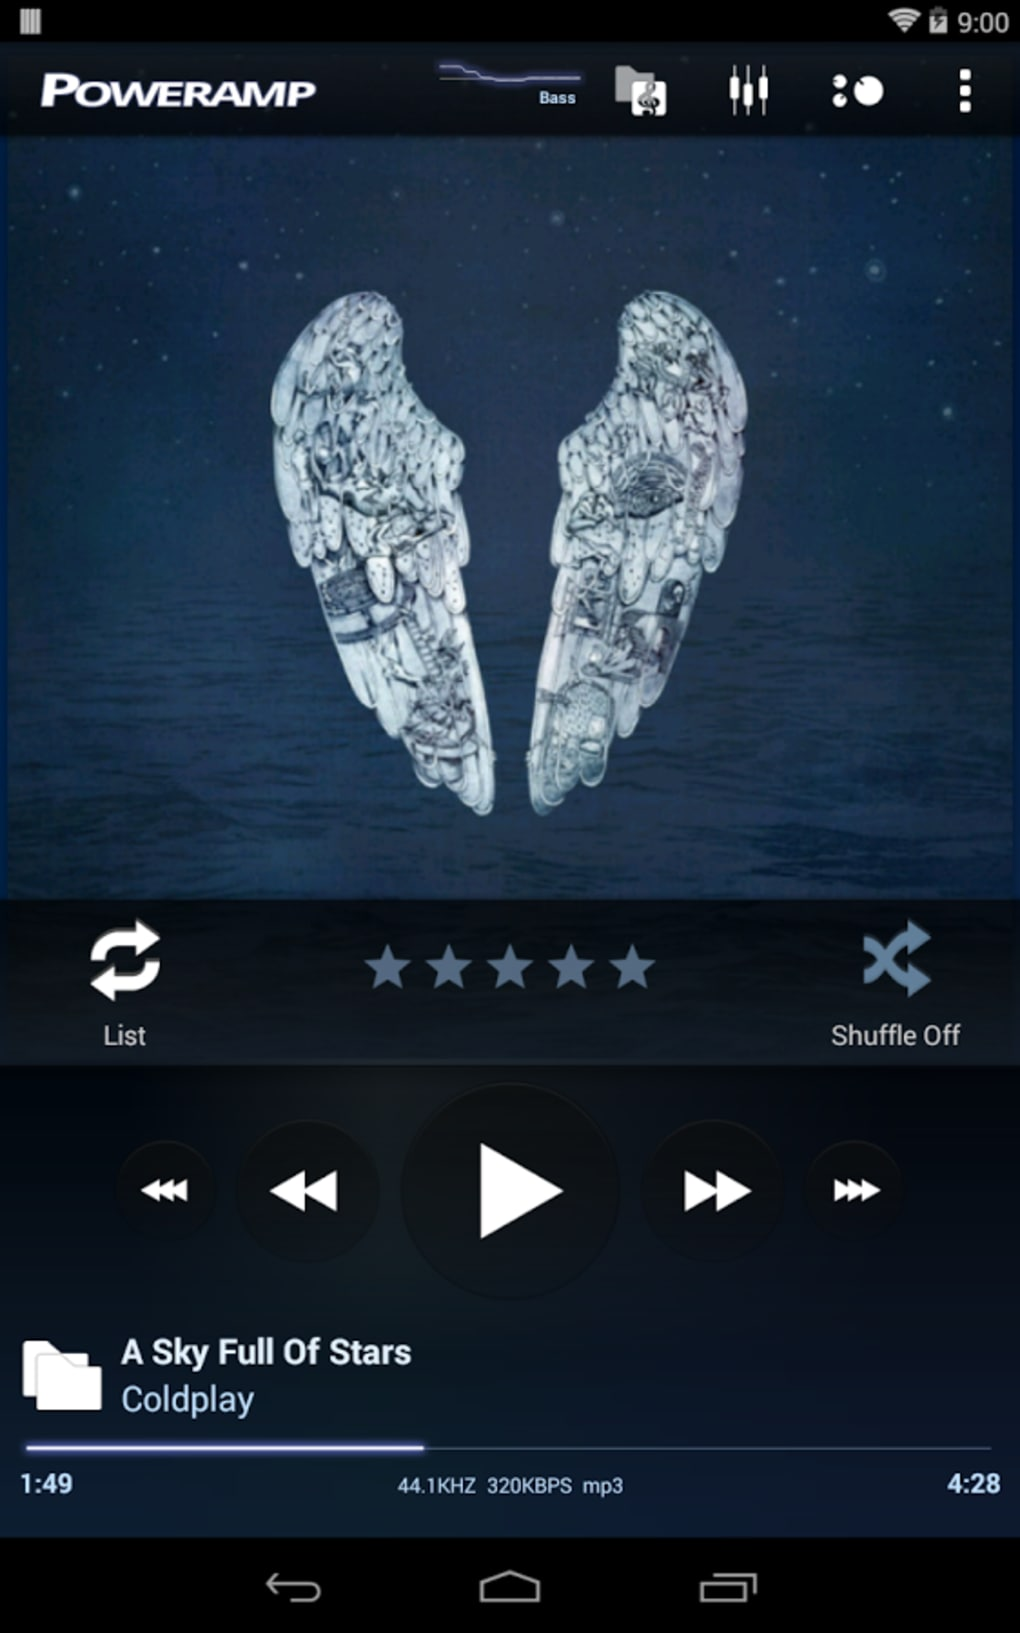 Poweramp Music Player for Android - Download